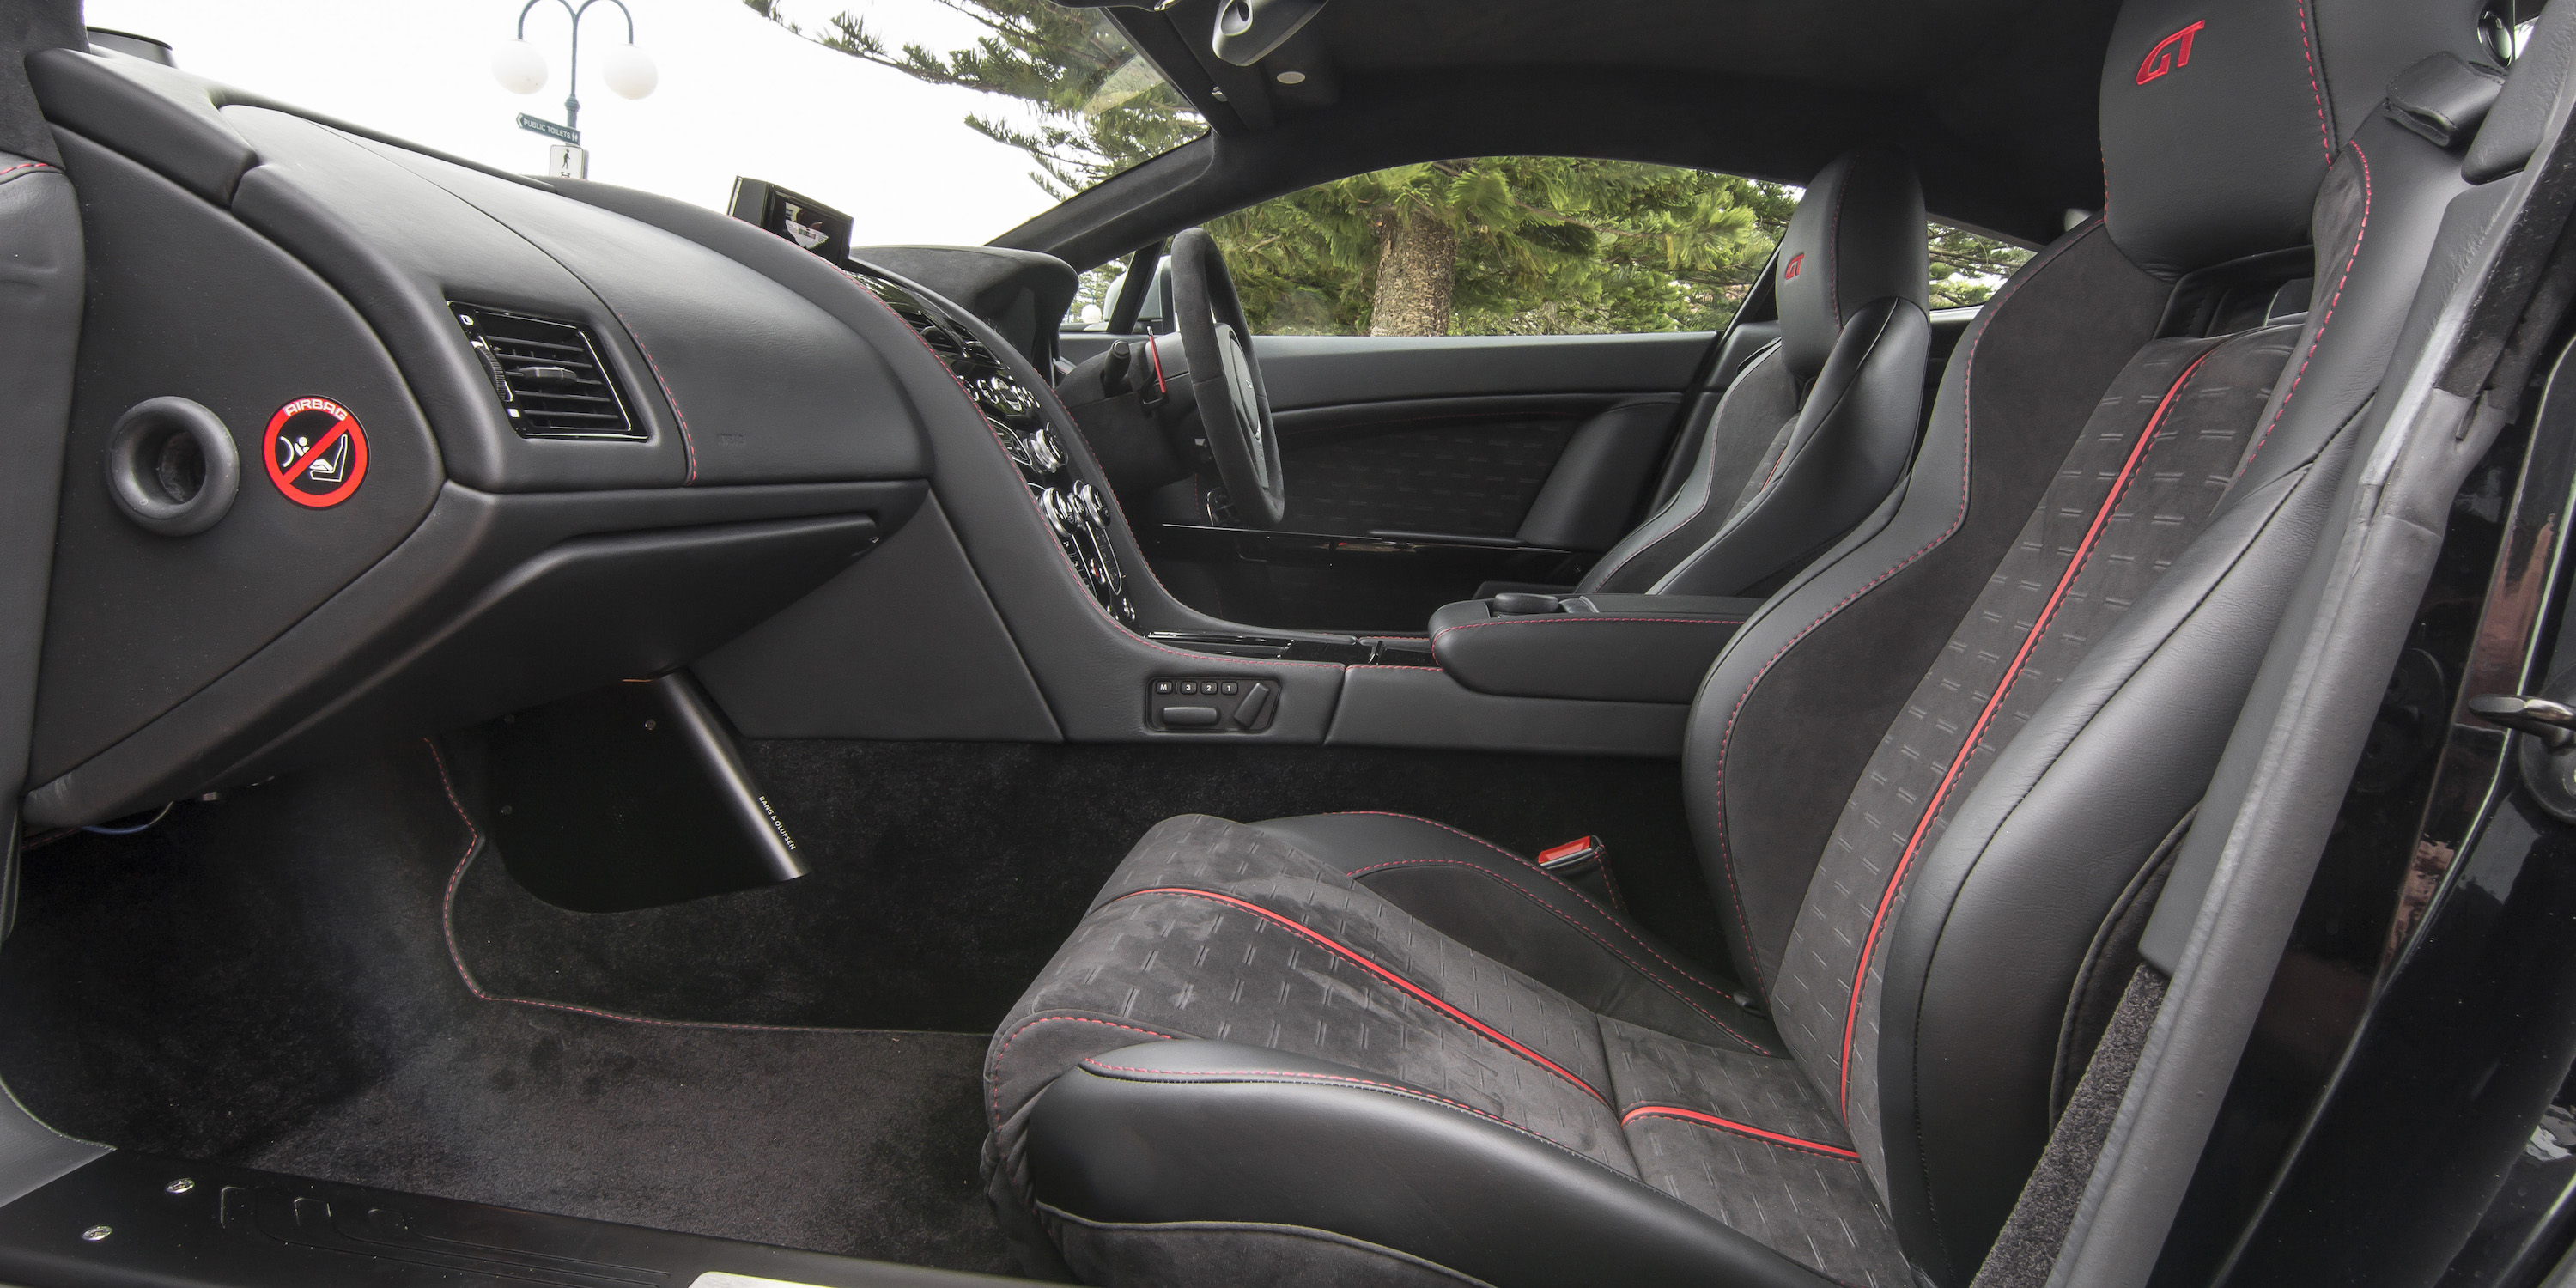 2016 Aston Martin Vantage Gt Passenger Seat Interior (Photo 16 of 25)